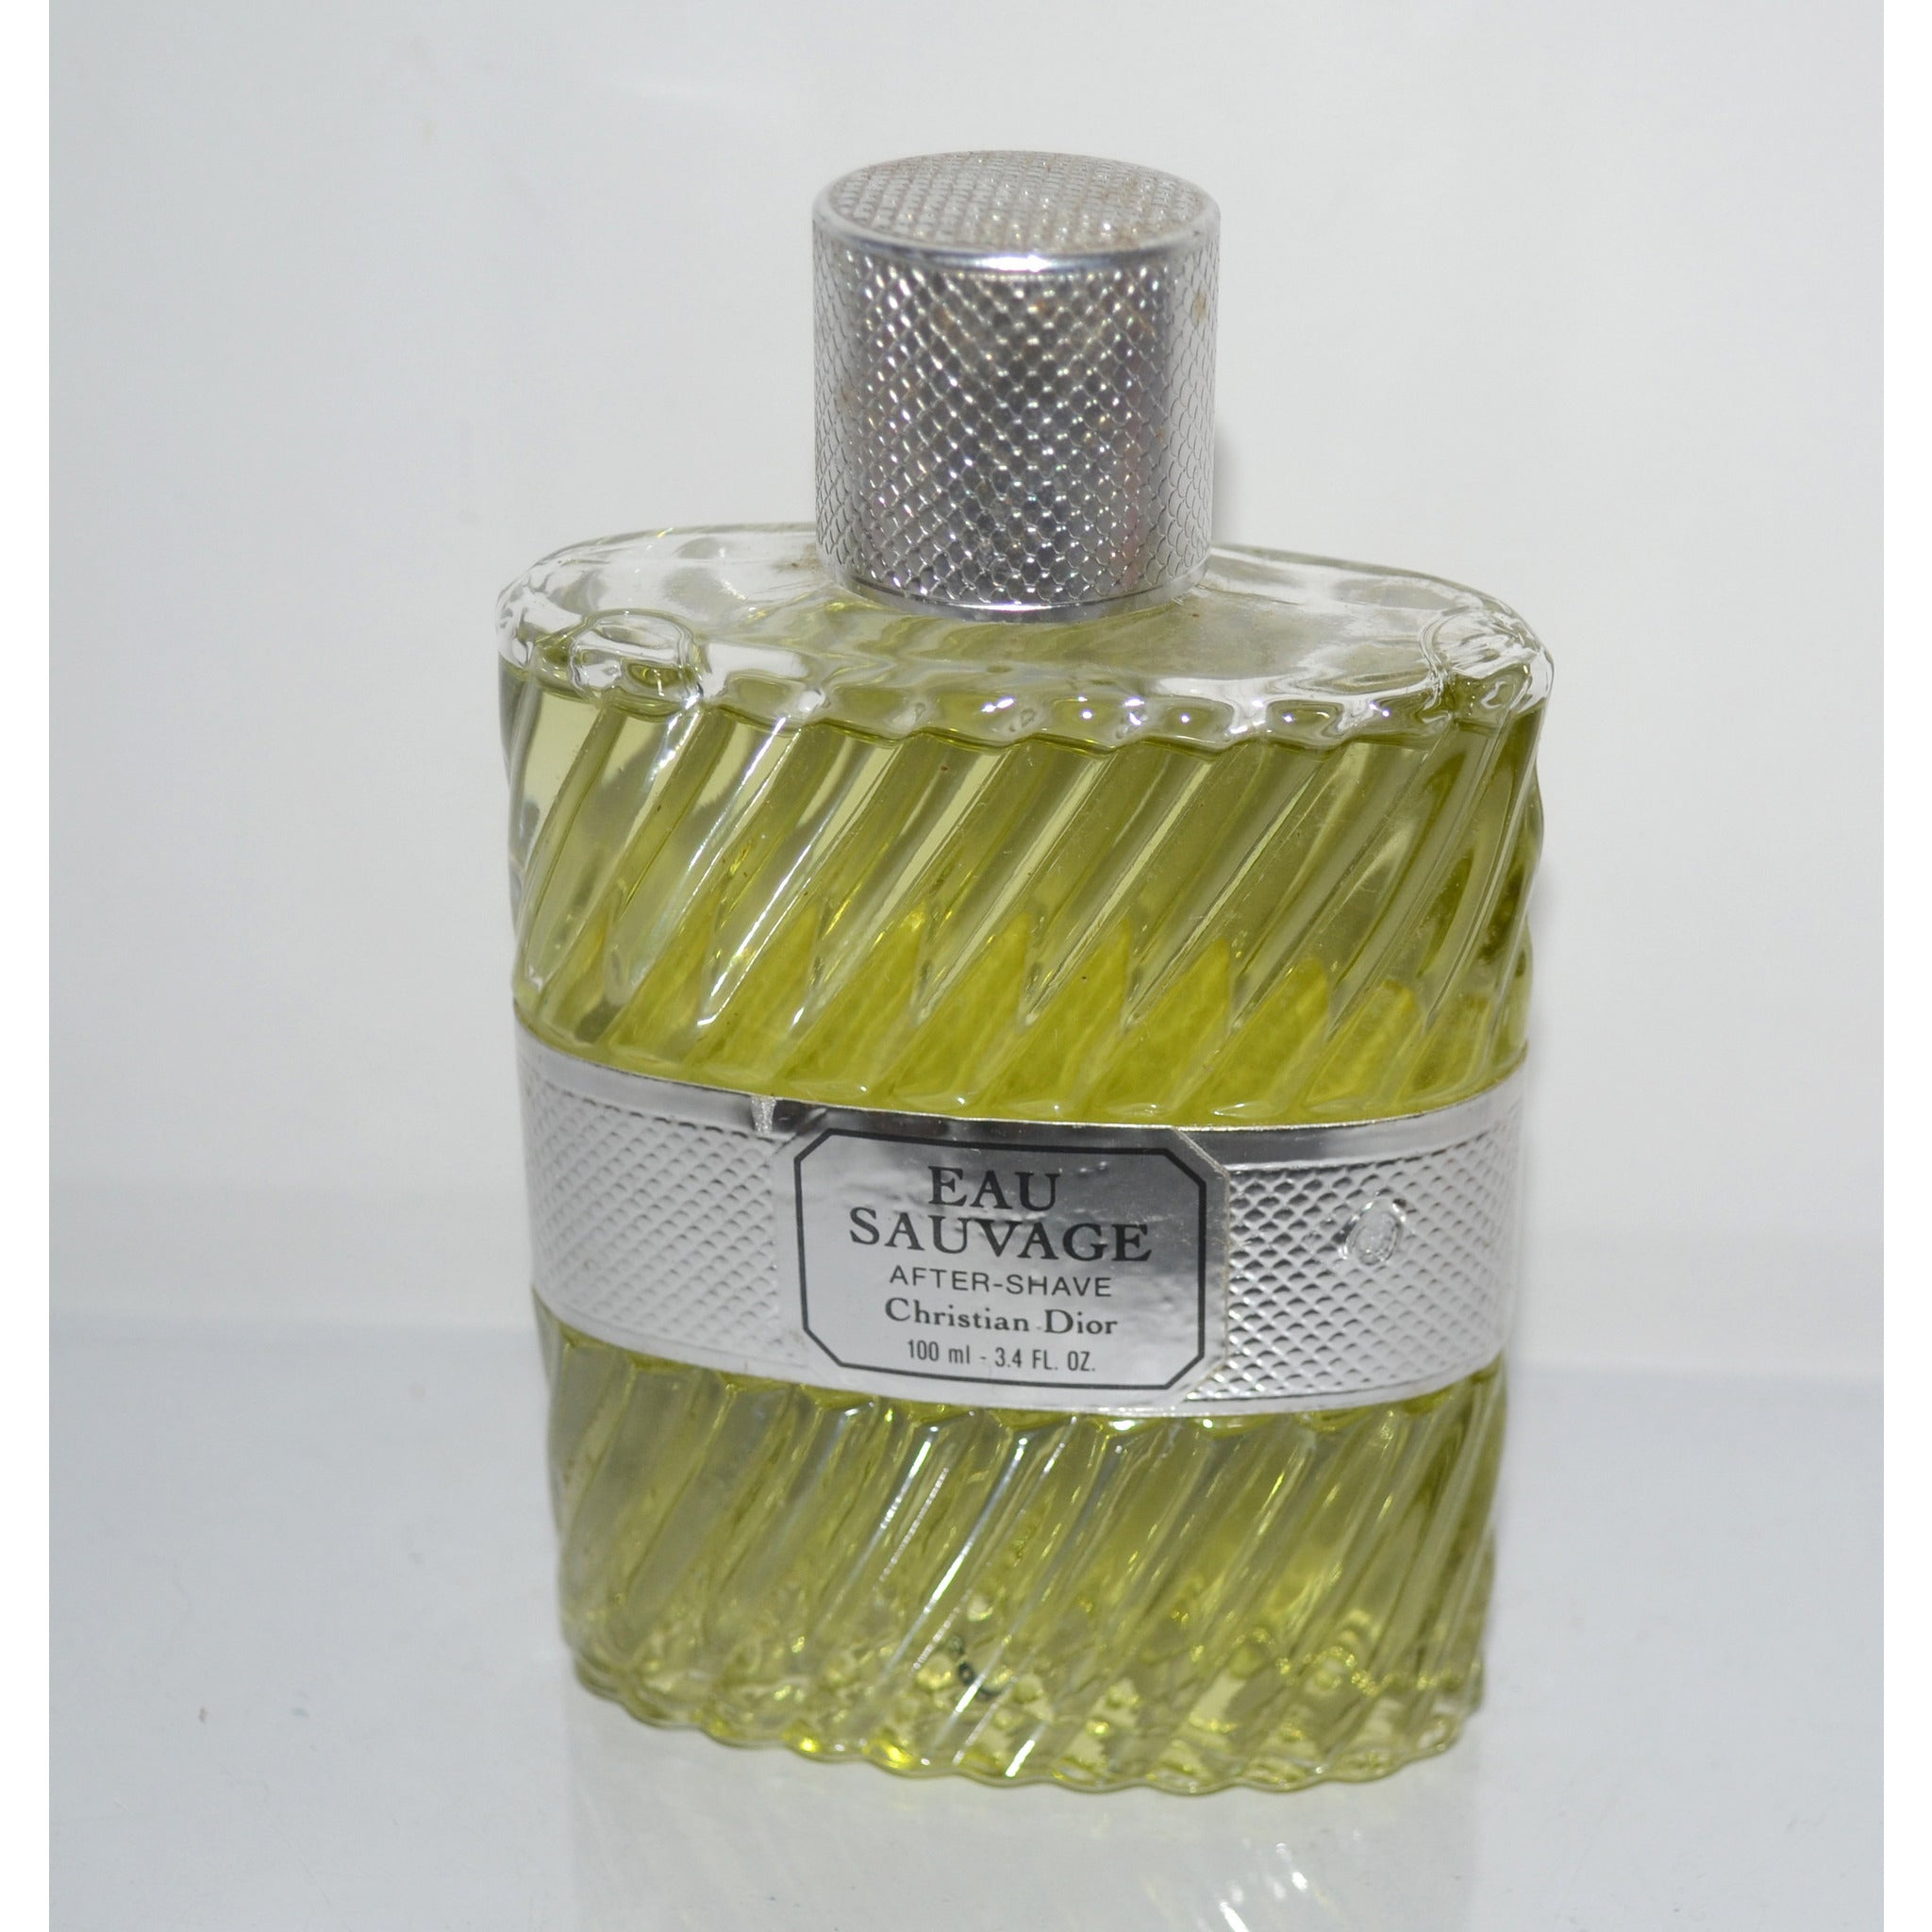 Vintage Eau Sauvage After Shave By Christian Dior